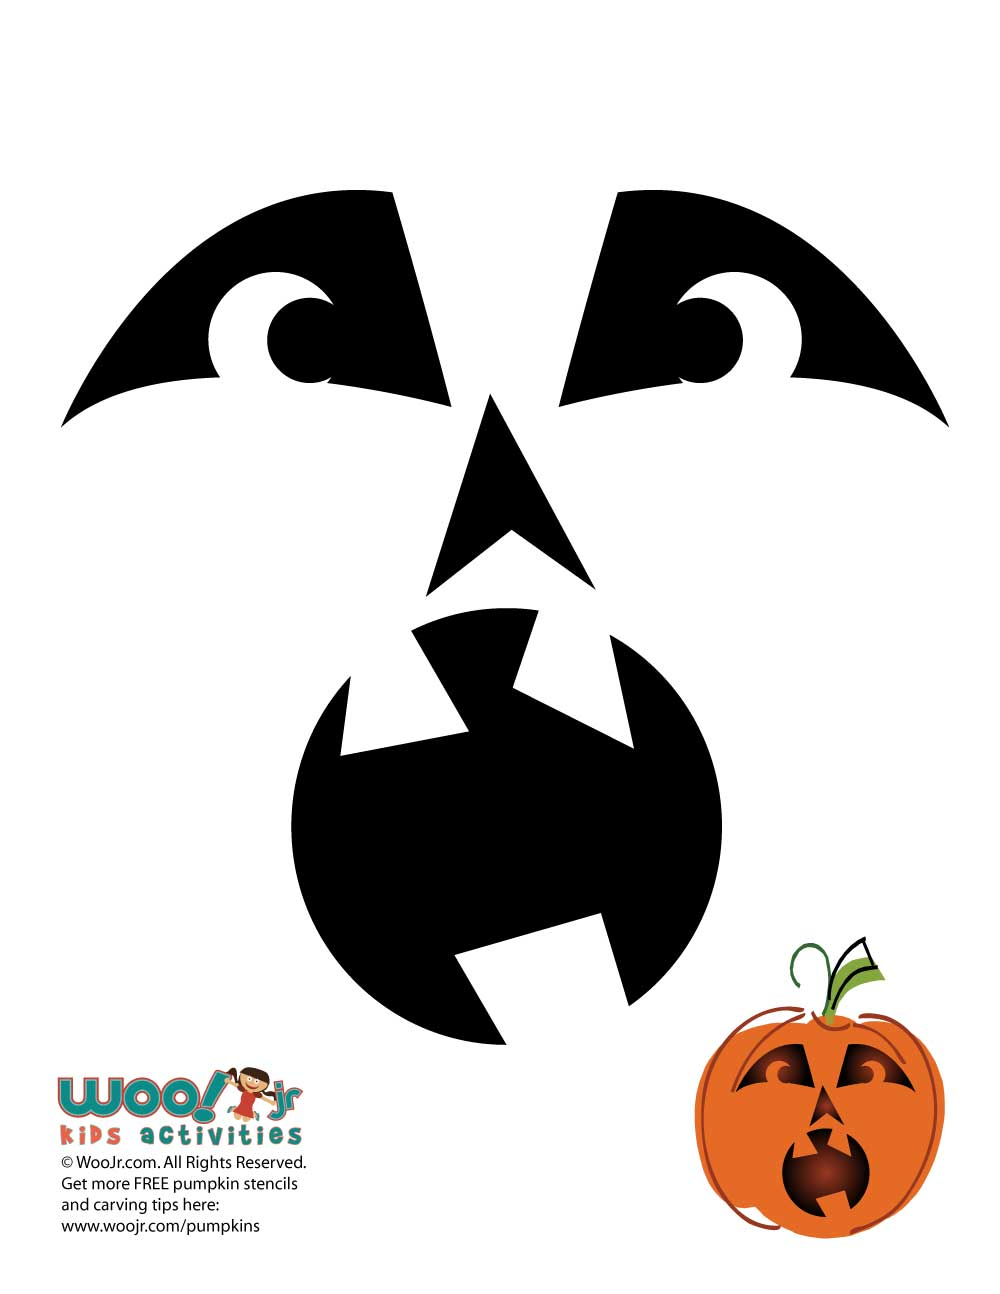 picture about Pumpkin Faces Printable known as A Dozen Jack o Lantern Pumpkin Faces in direction of Carve Woo! Jr